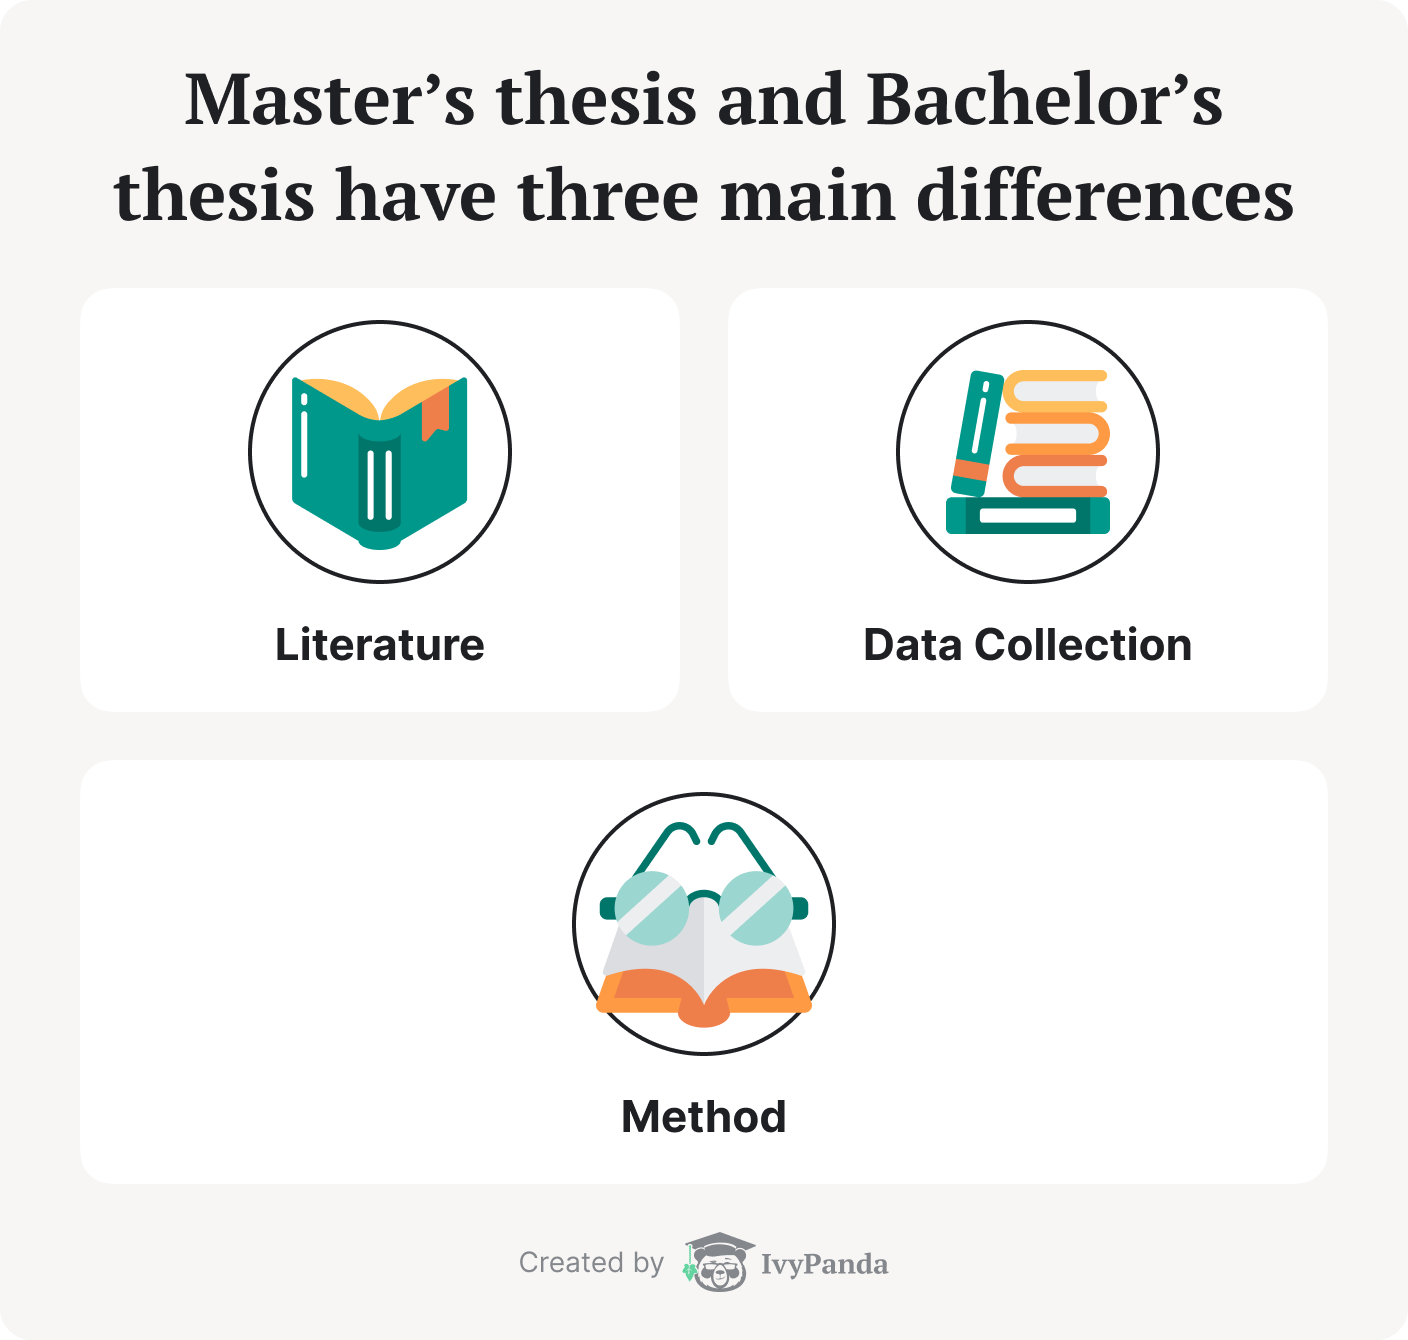 Economic history thesis ideas it infrastructure project manager resume examples